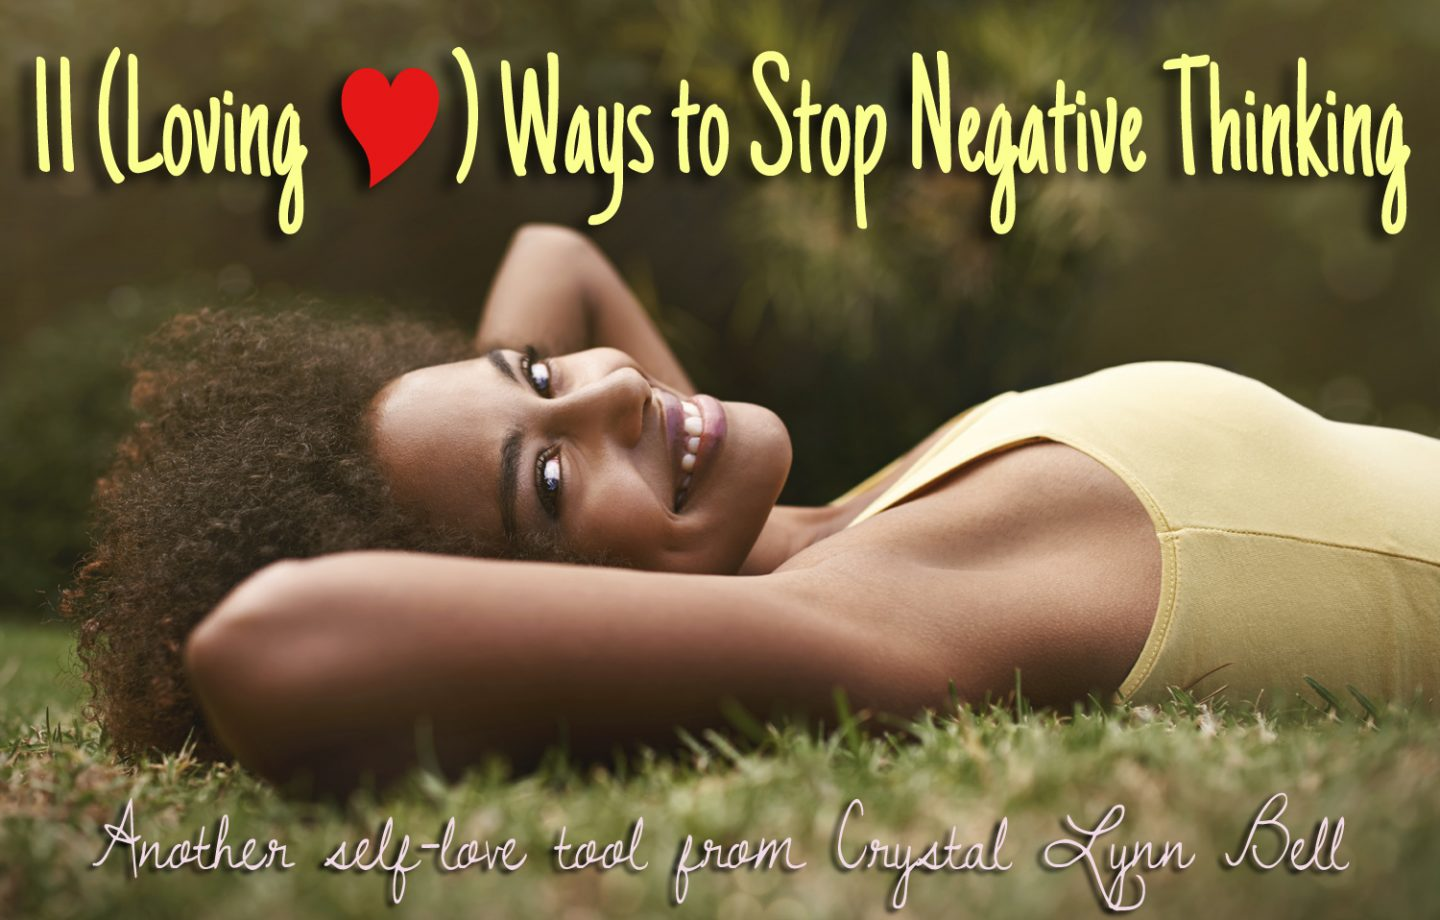 11 Loving Ways to Stop Negative Thinking